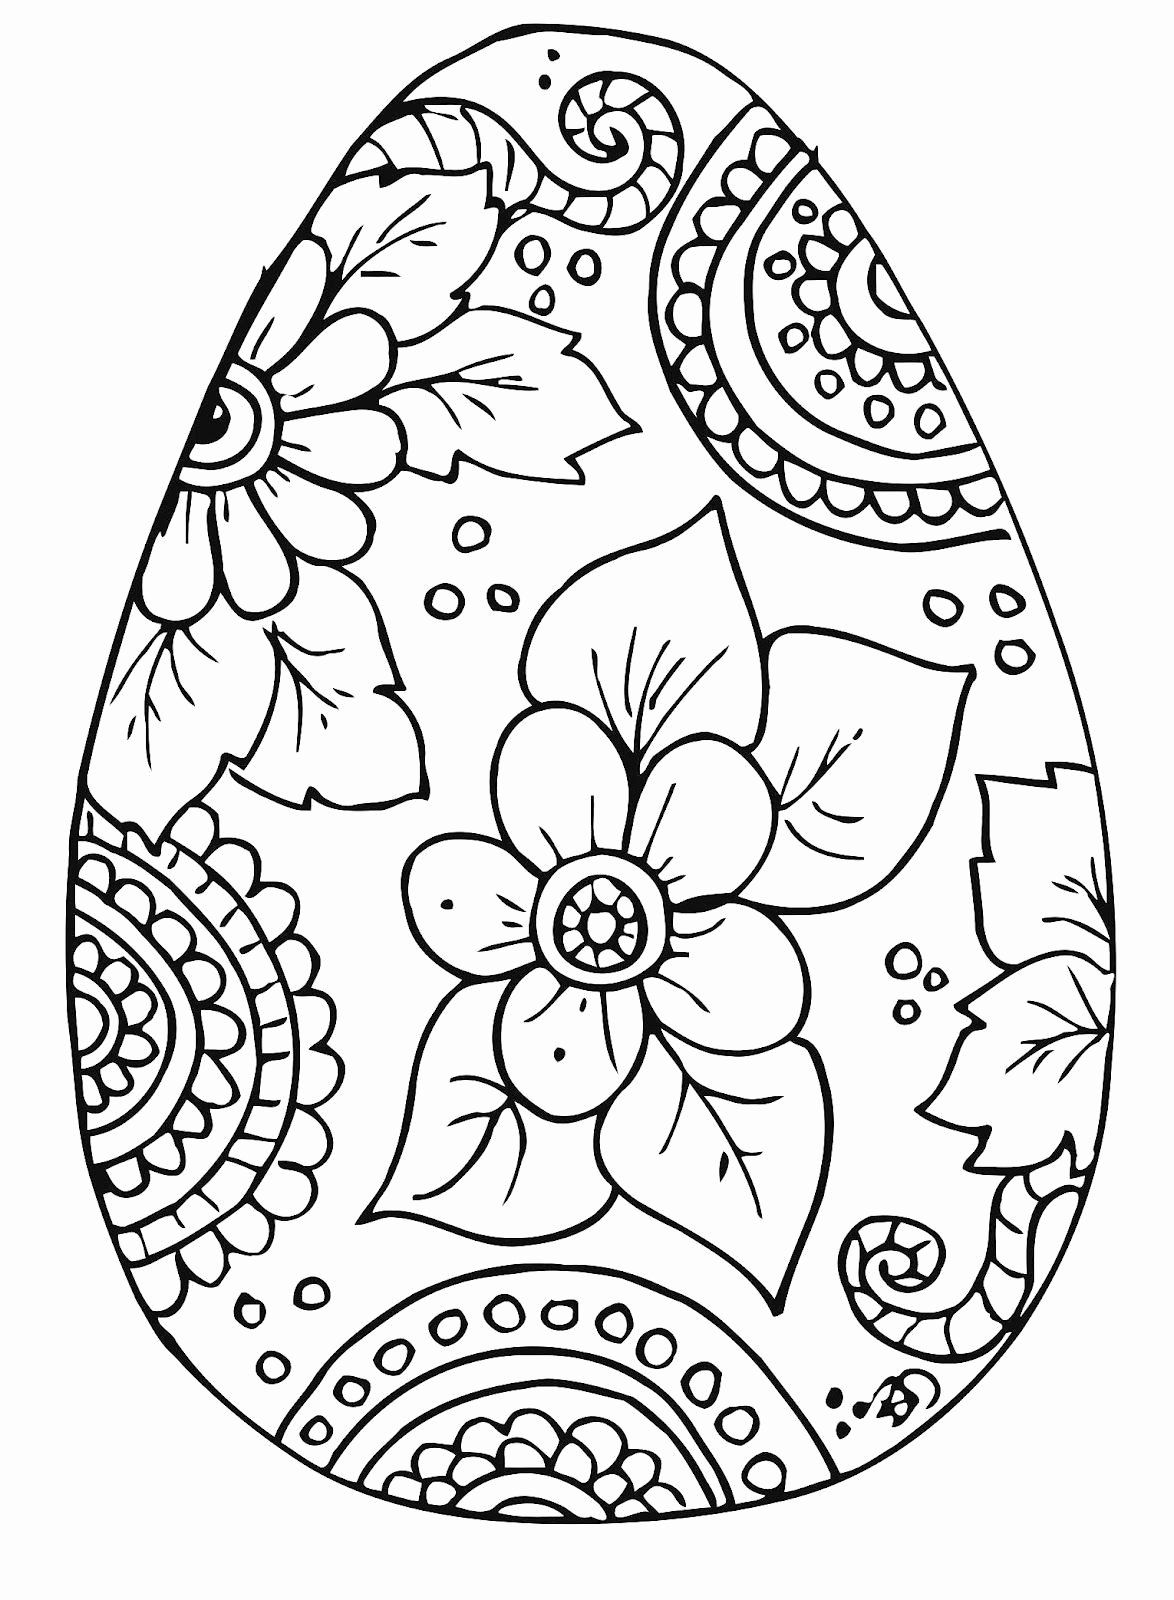 Easter Coloring Pages For Adults Unique Easter Coloring Coloring Books Pages In 2020 Bunny Coloring Pages Easter Coloring Pages Printable Free Easter Coloring Pages